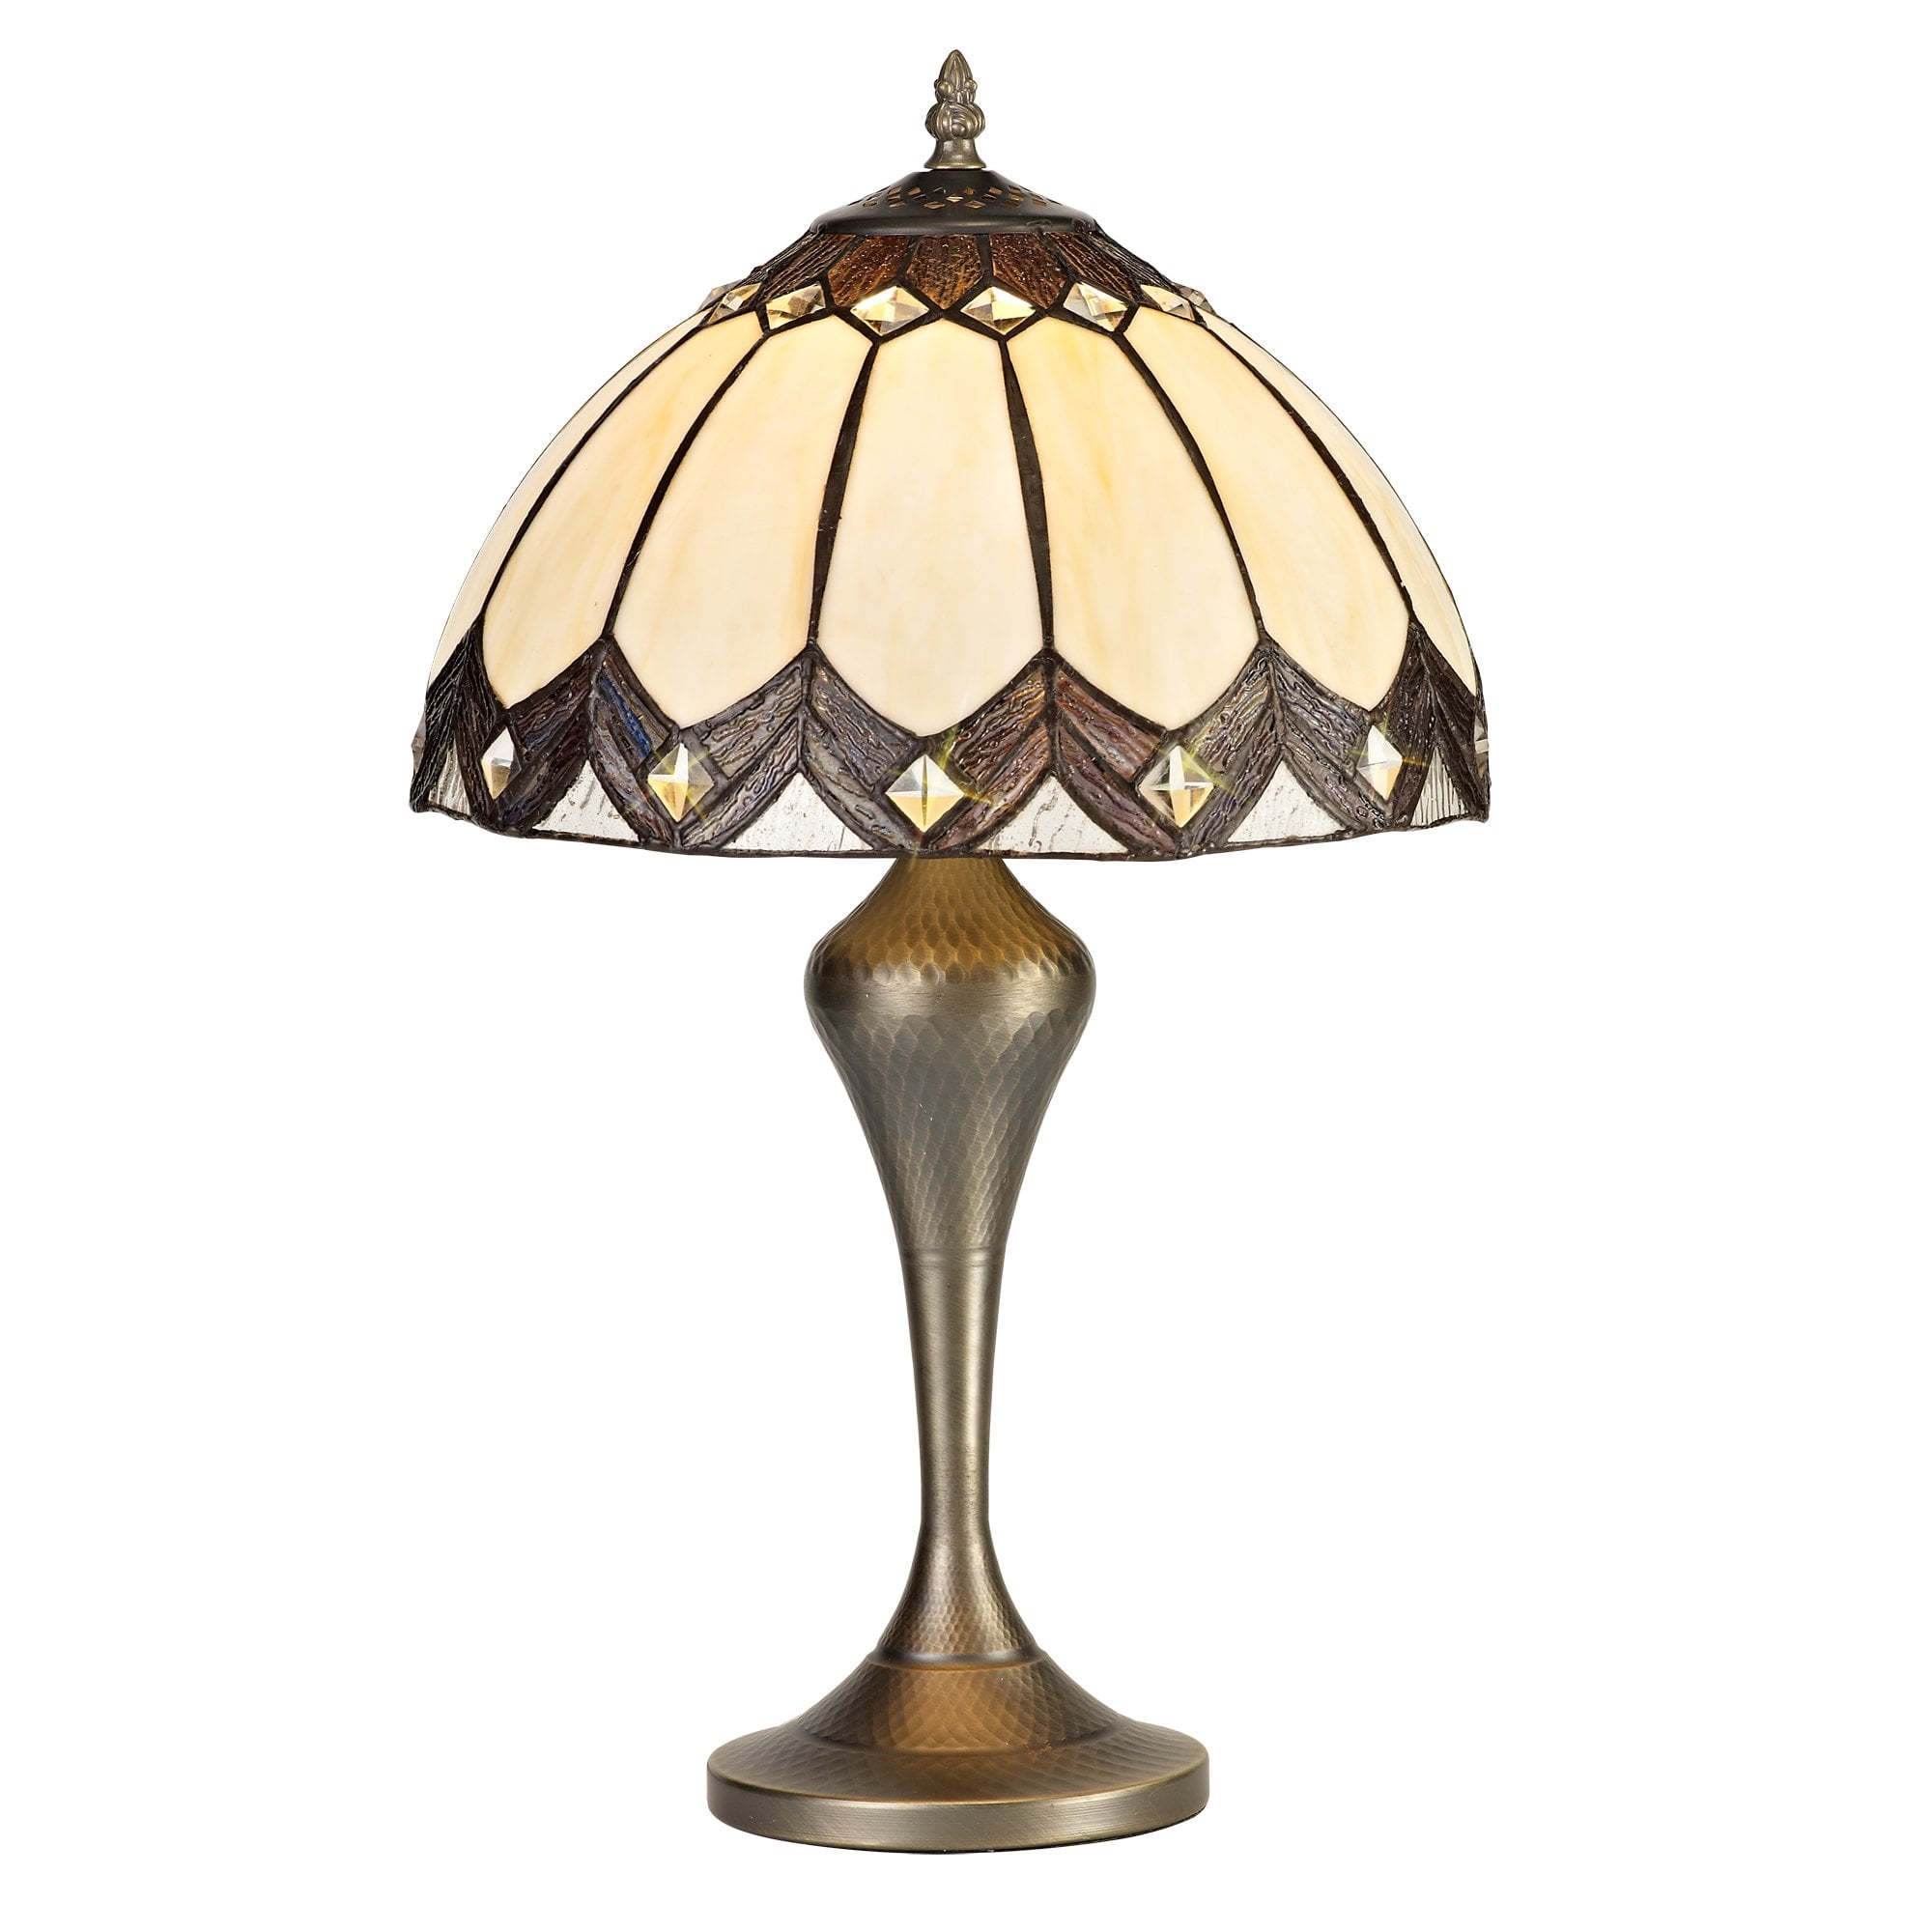 Brown And Cream Tiffany Style Glass Table Lamp With Brass Finish Base